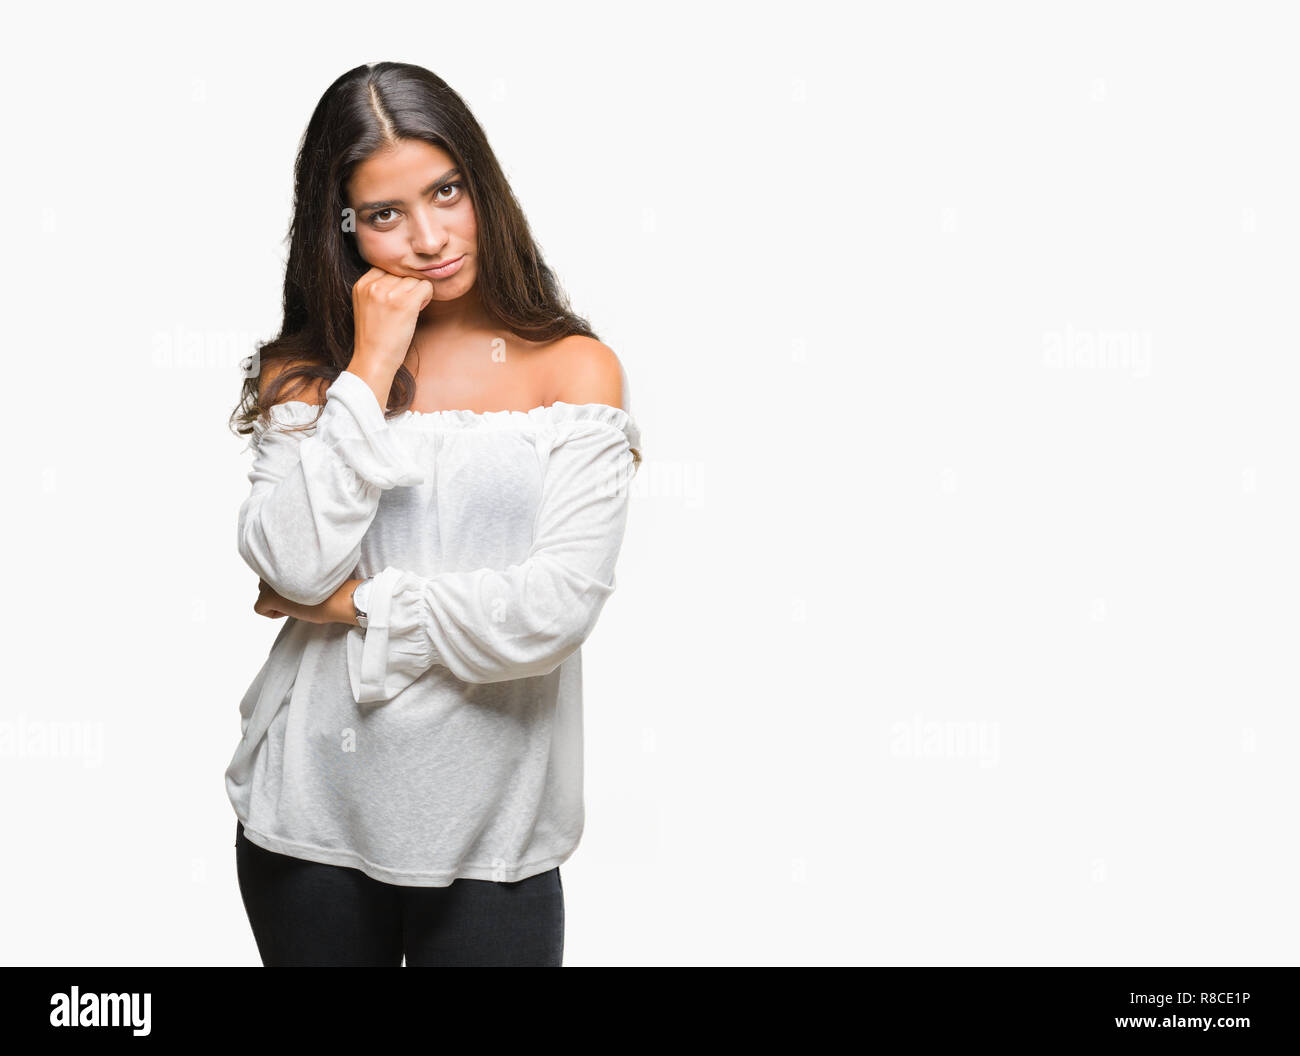 Young beautiful arab woman over isolated background thinking looking tired and bored with depression problems with crossed arms. Stock Photo